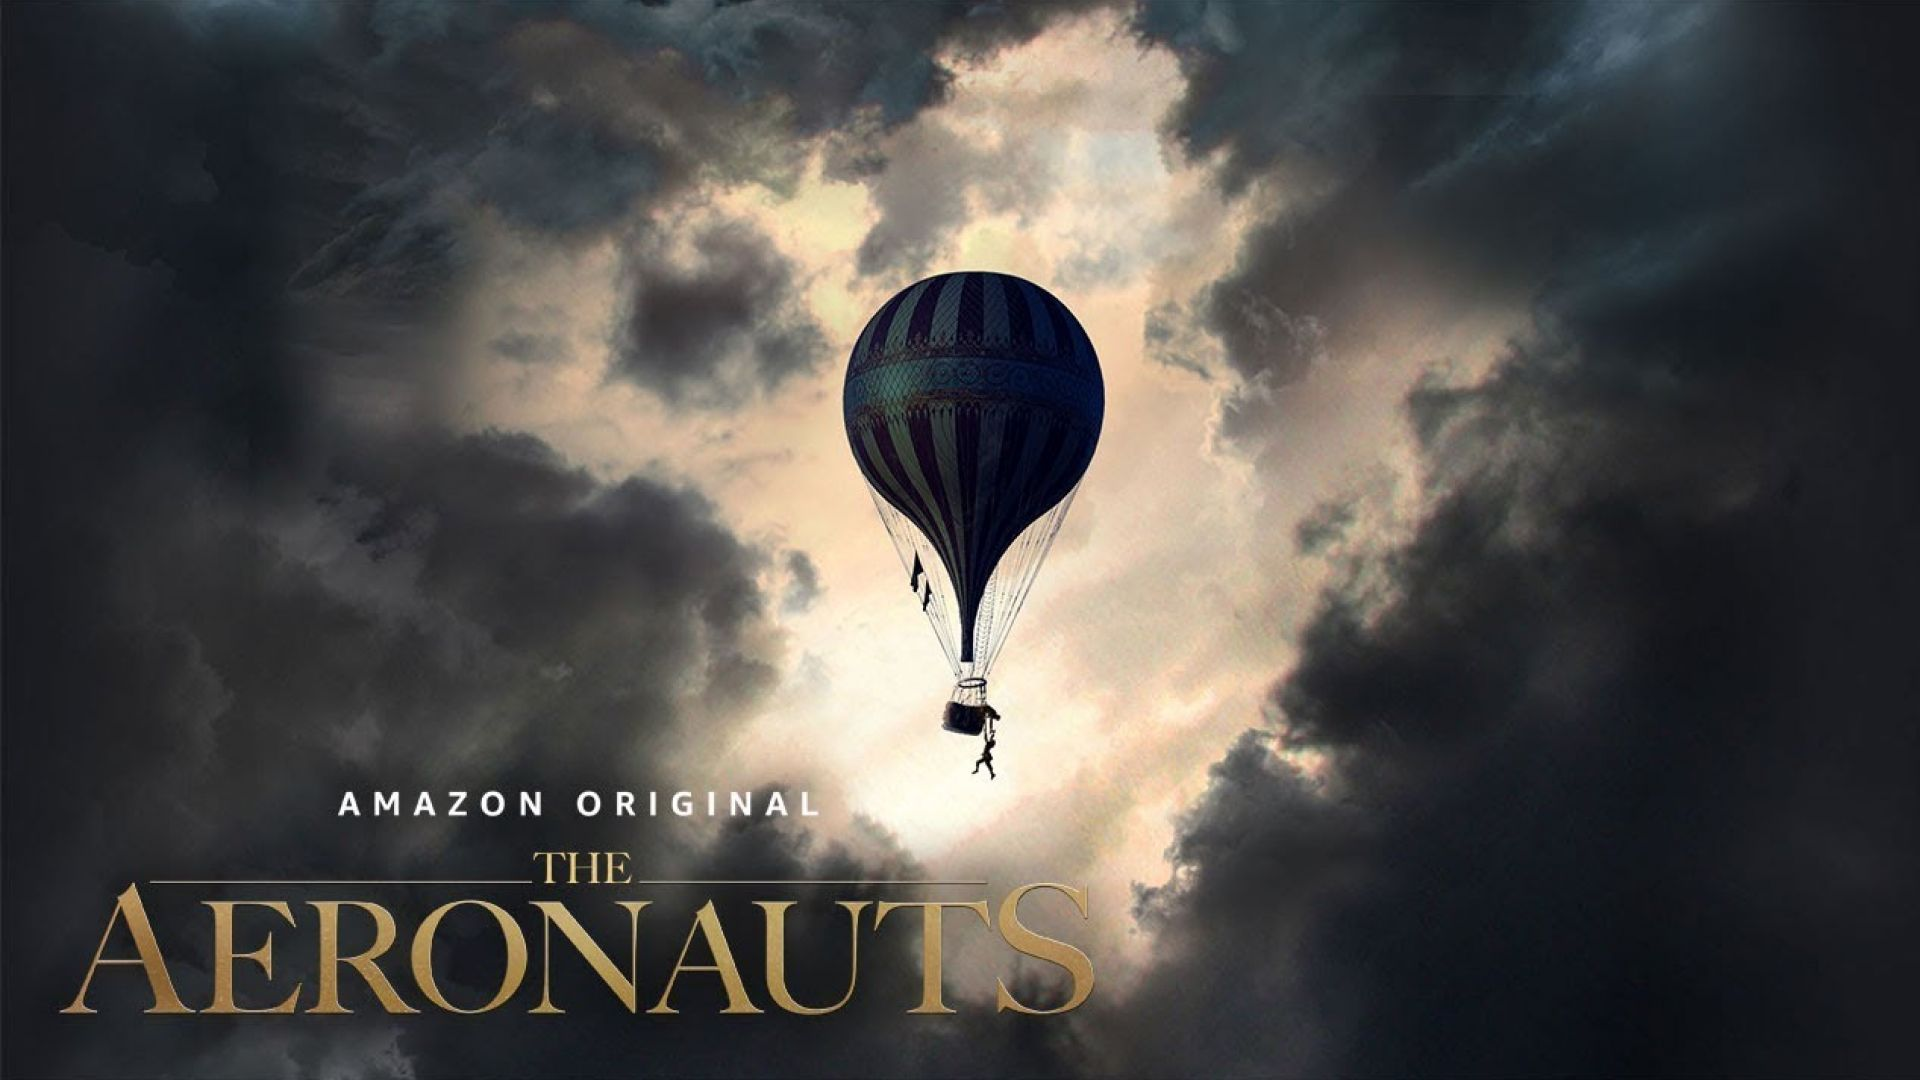 'The Aeronauts' trailer